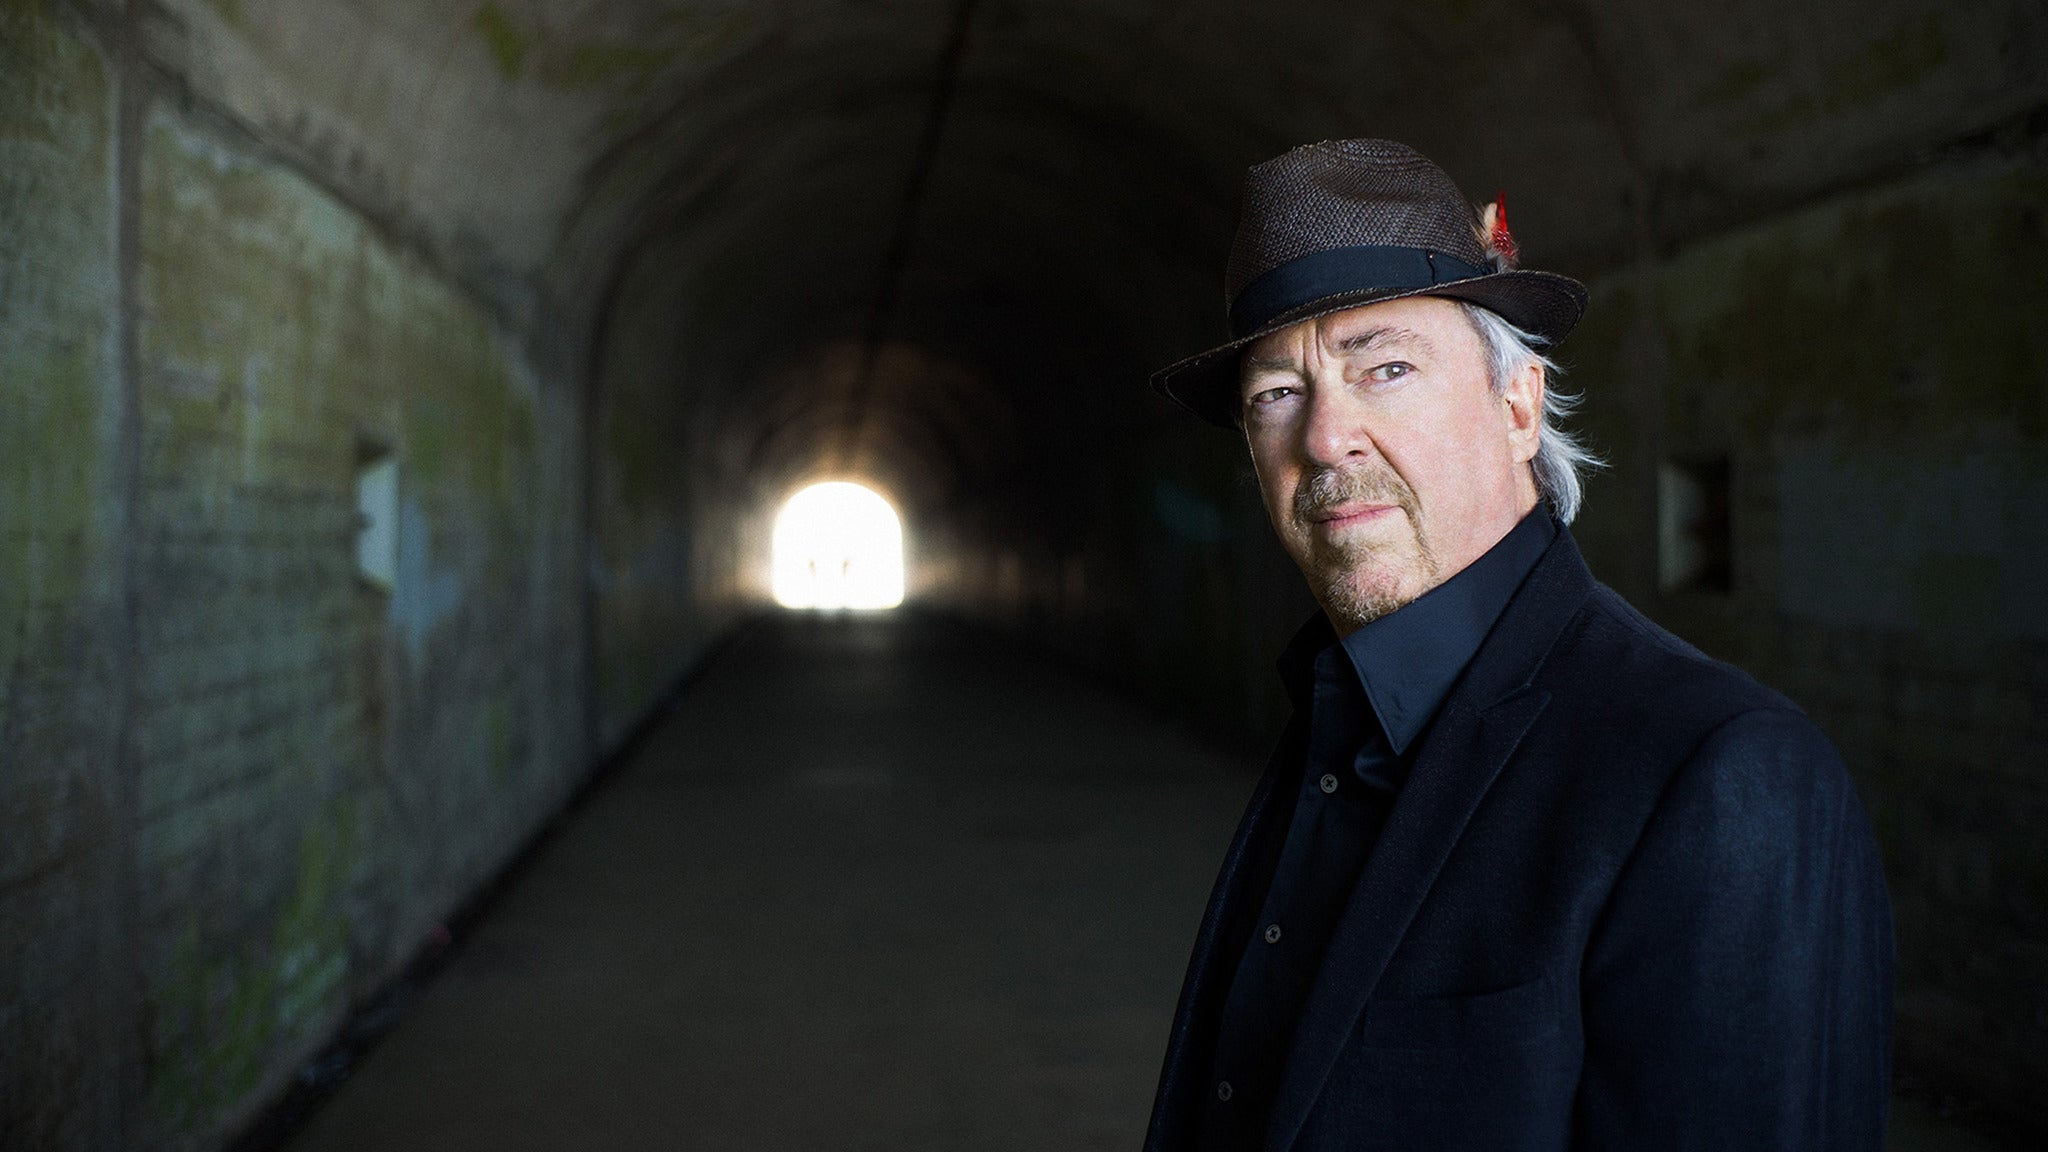 Boz Scaggs at Community Theatre-NJ - Morristown, NJ 07960